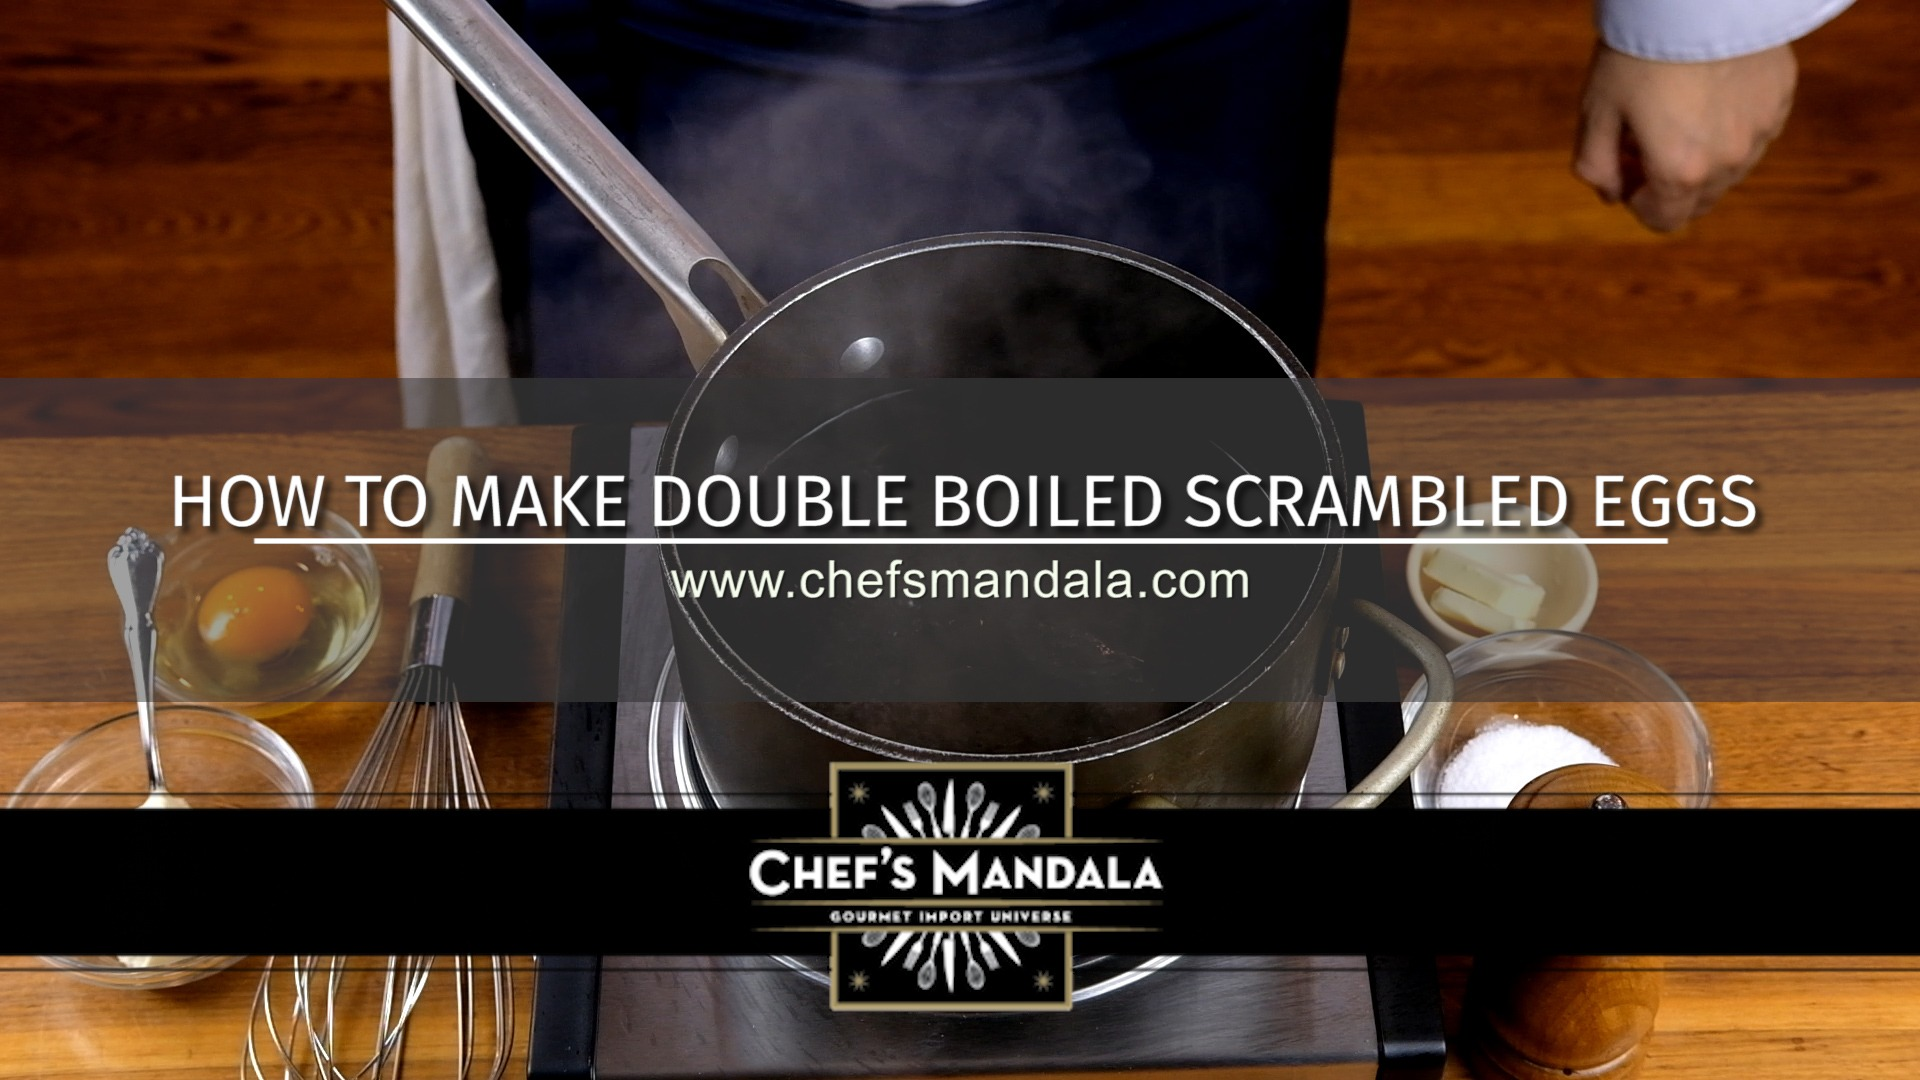 HOW TO MAKE DOUBLE BOILED SCRAMBLED EGGS